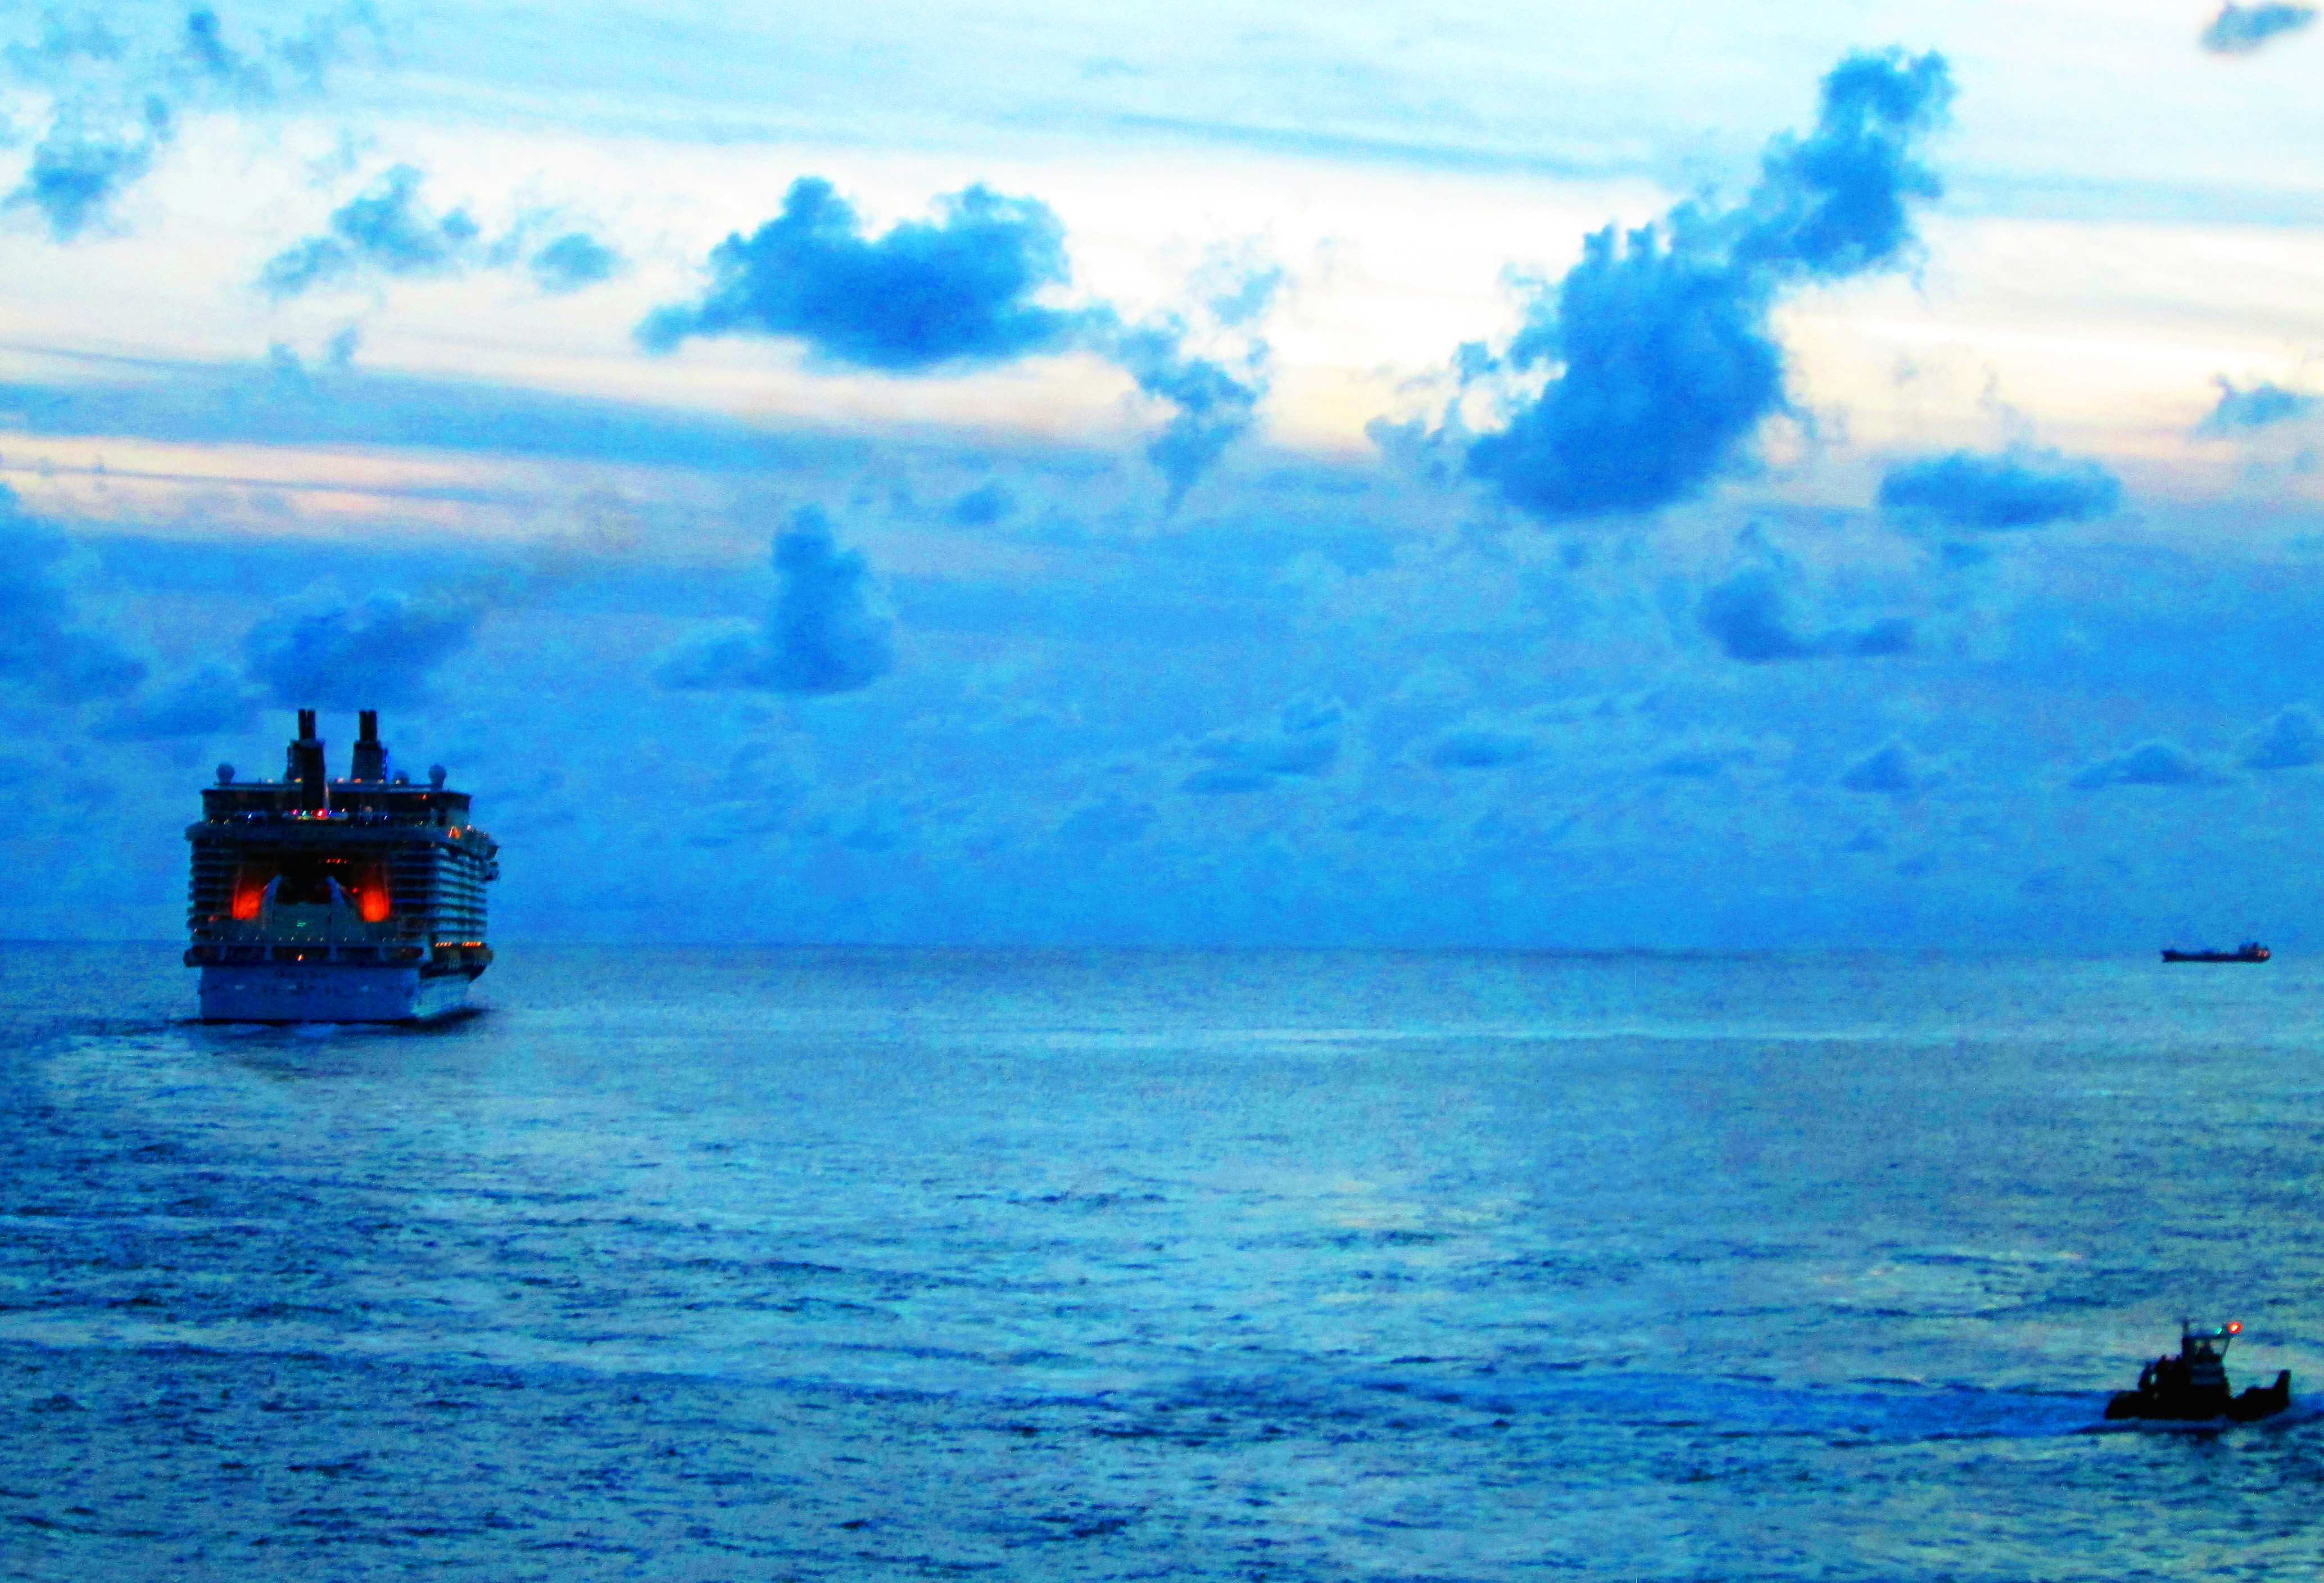 Ships At Dusk In The Caribbean Sea